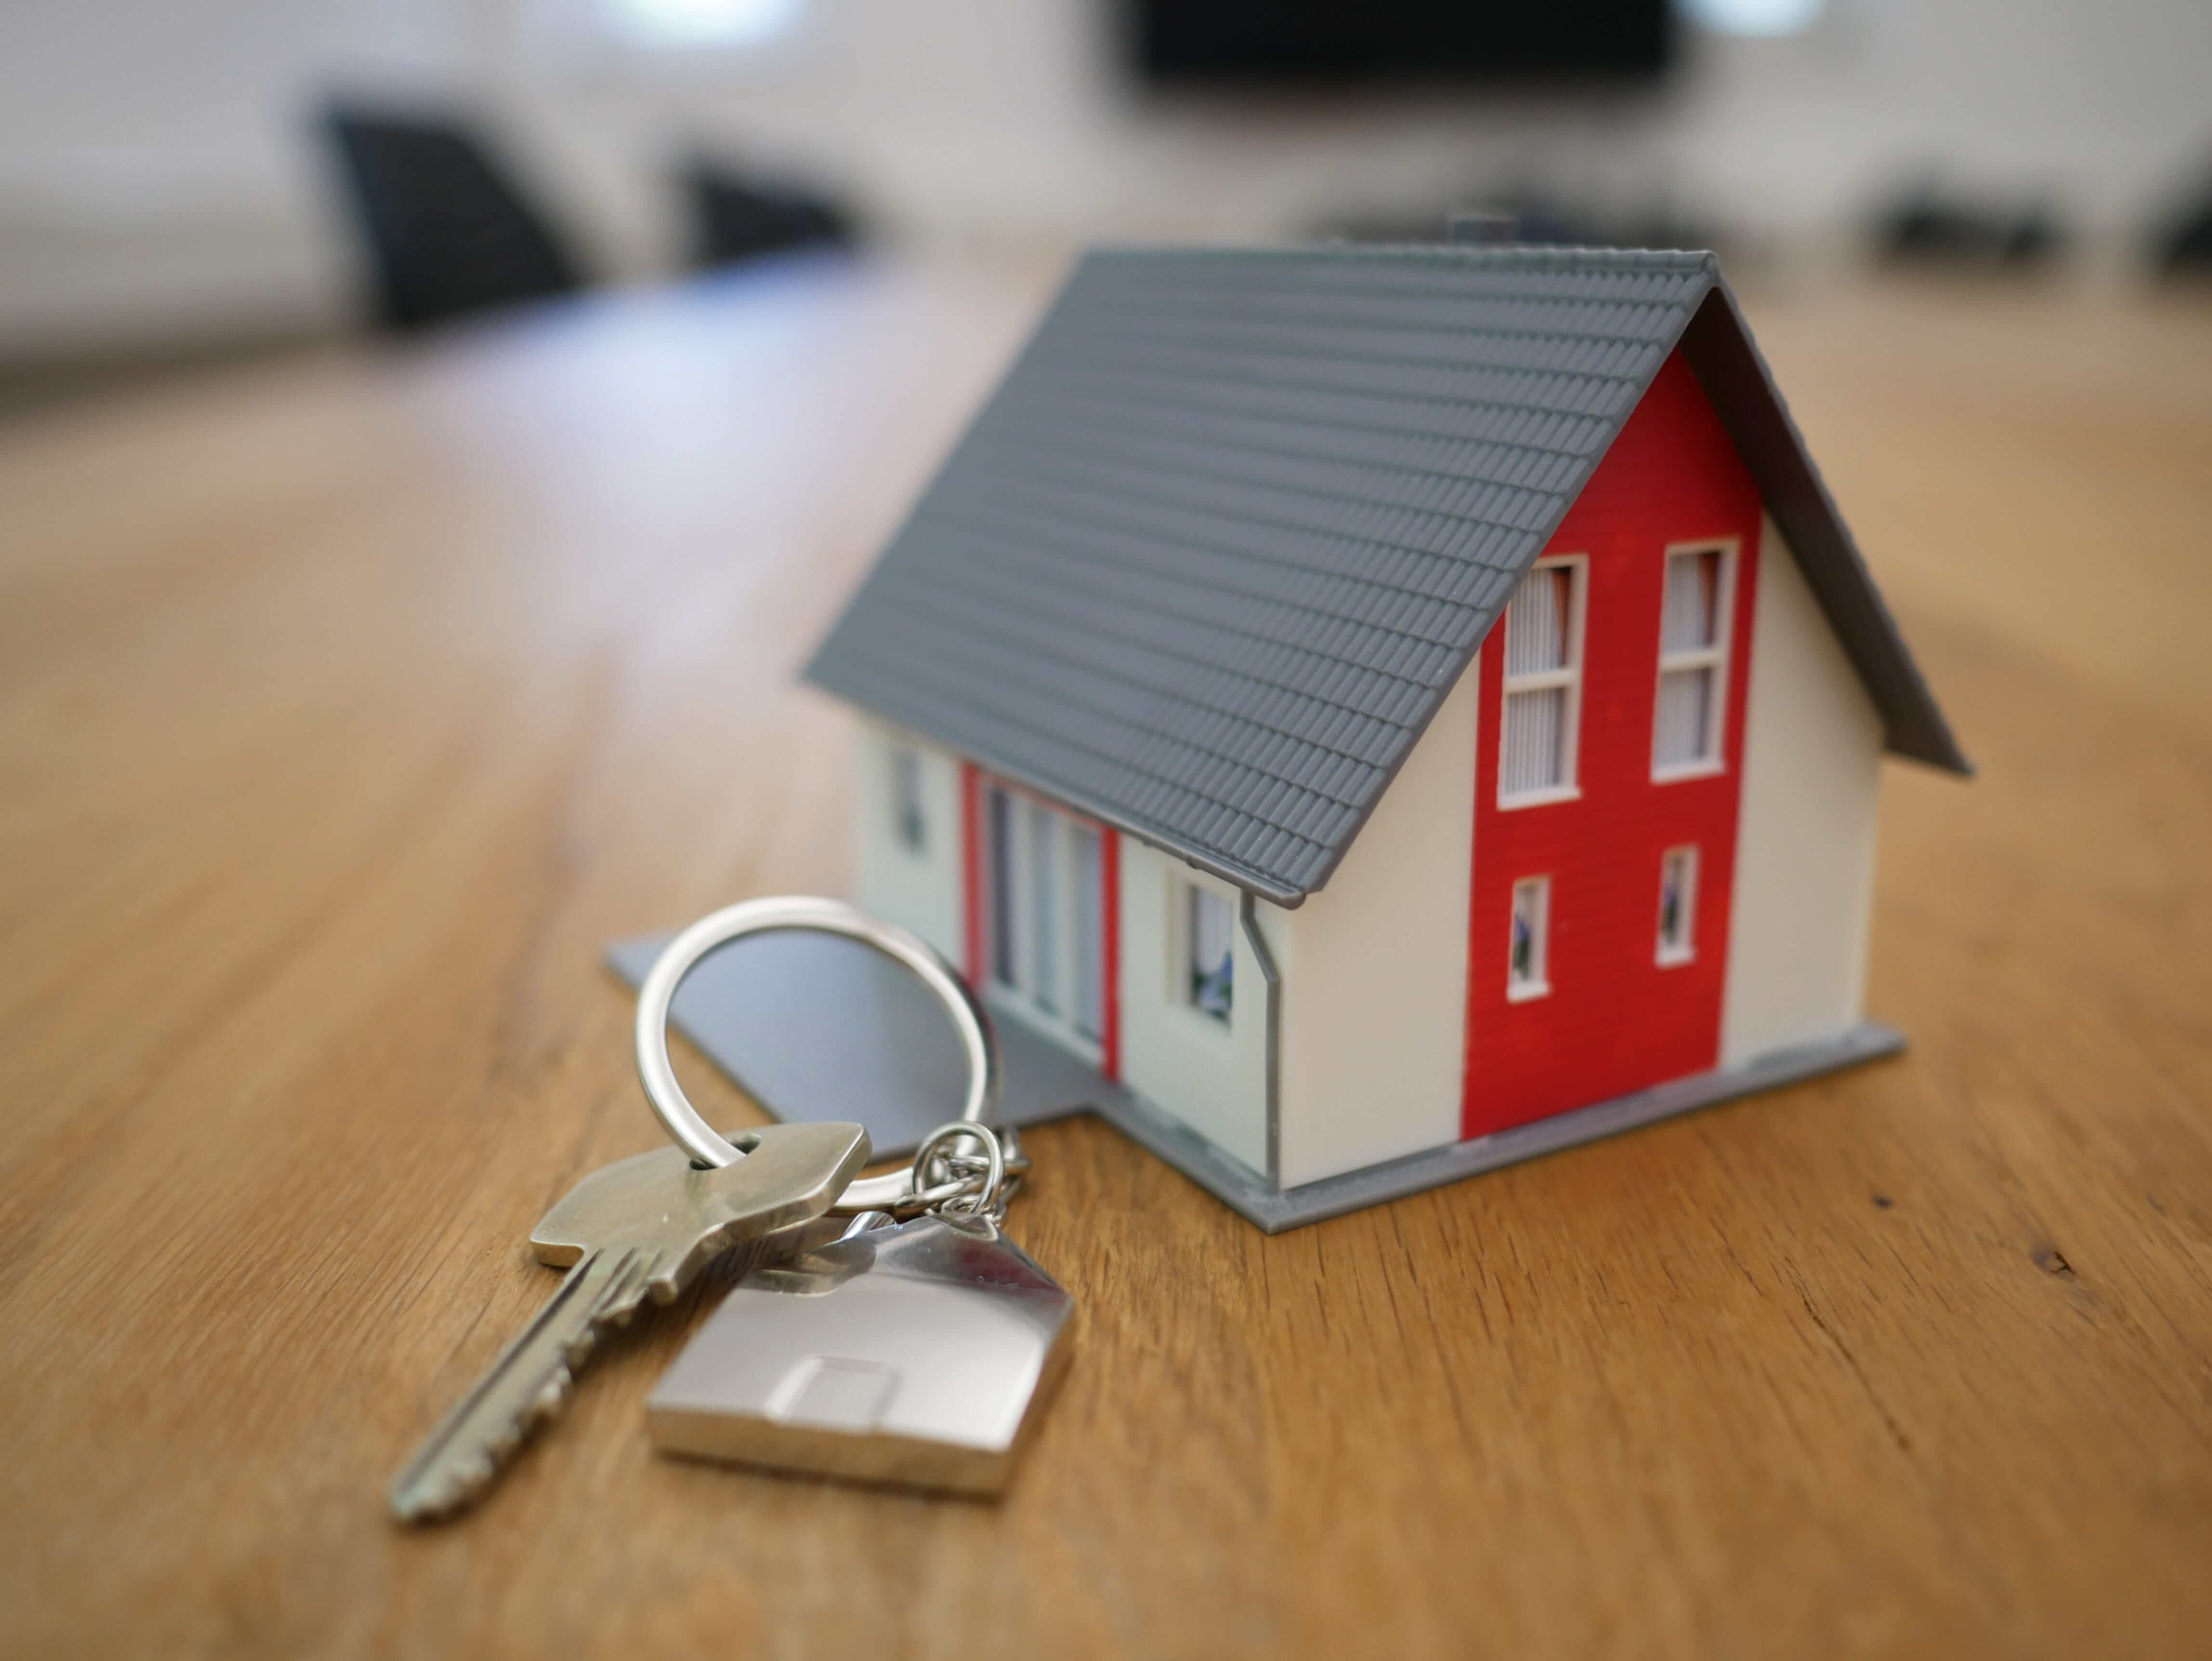 BUY OR FLIP WITH FULL CONFIDENCE IN YOUR LOAN PREAPPROVAL